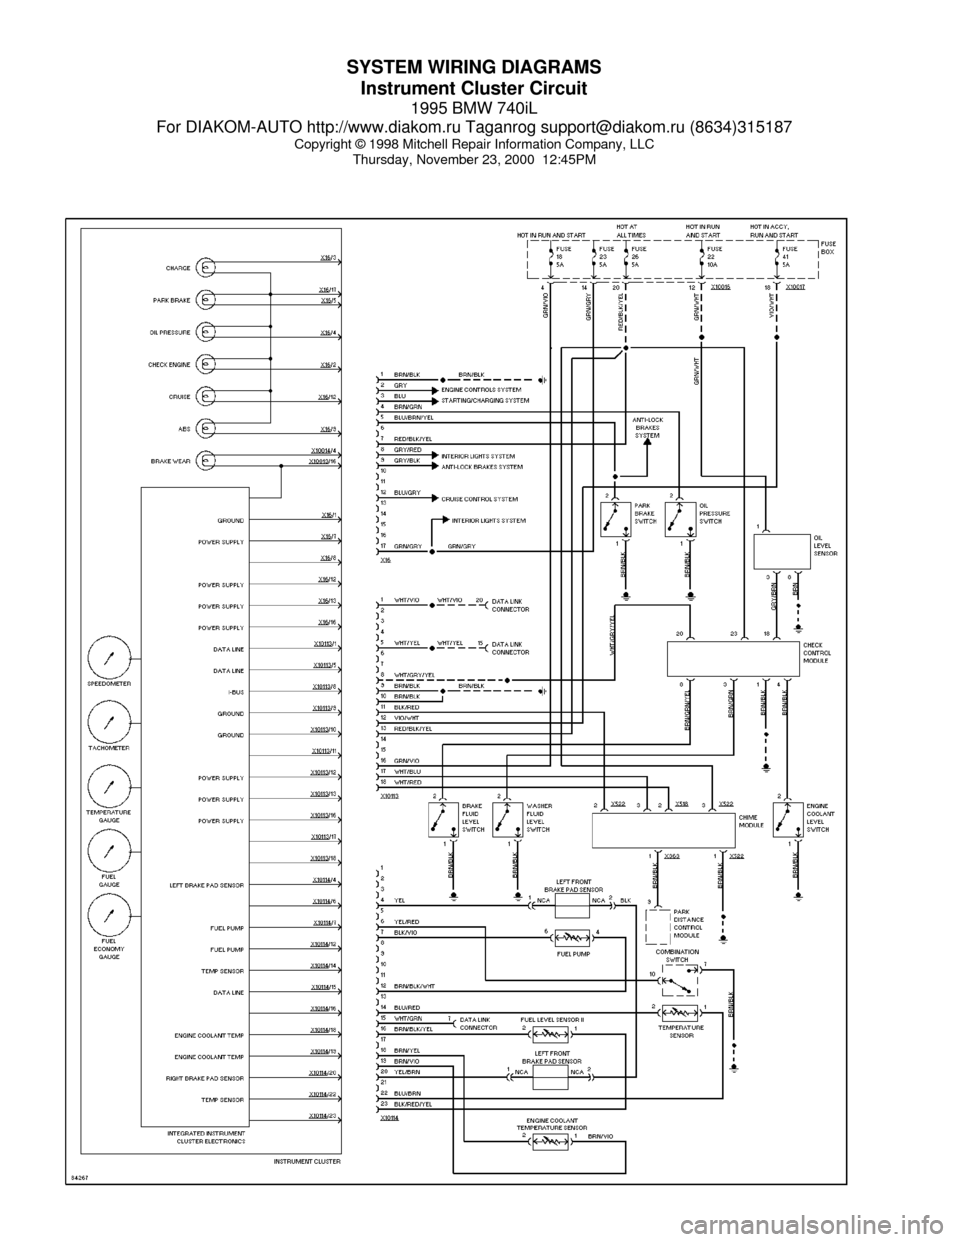 E Wiring Diagram Controller Infrared Sensor Wiring Diagram - Mitchell wiring diagrams